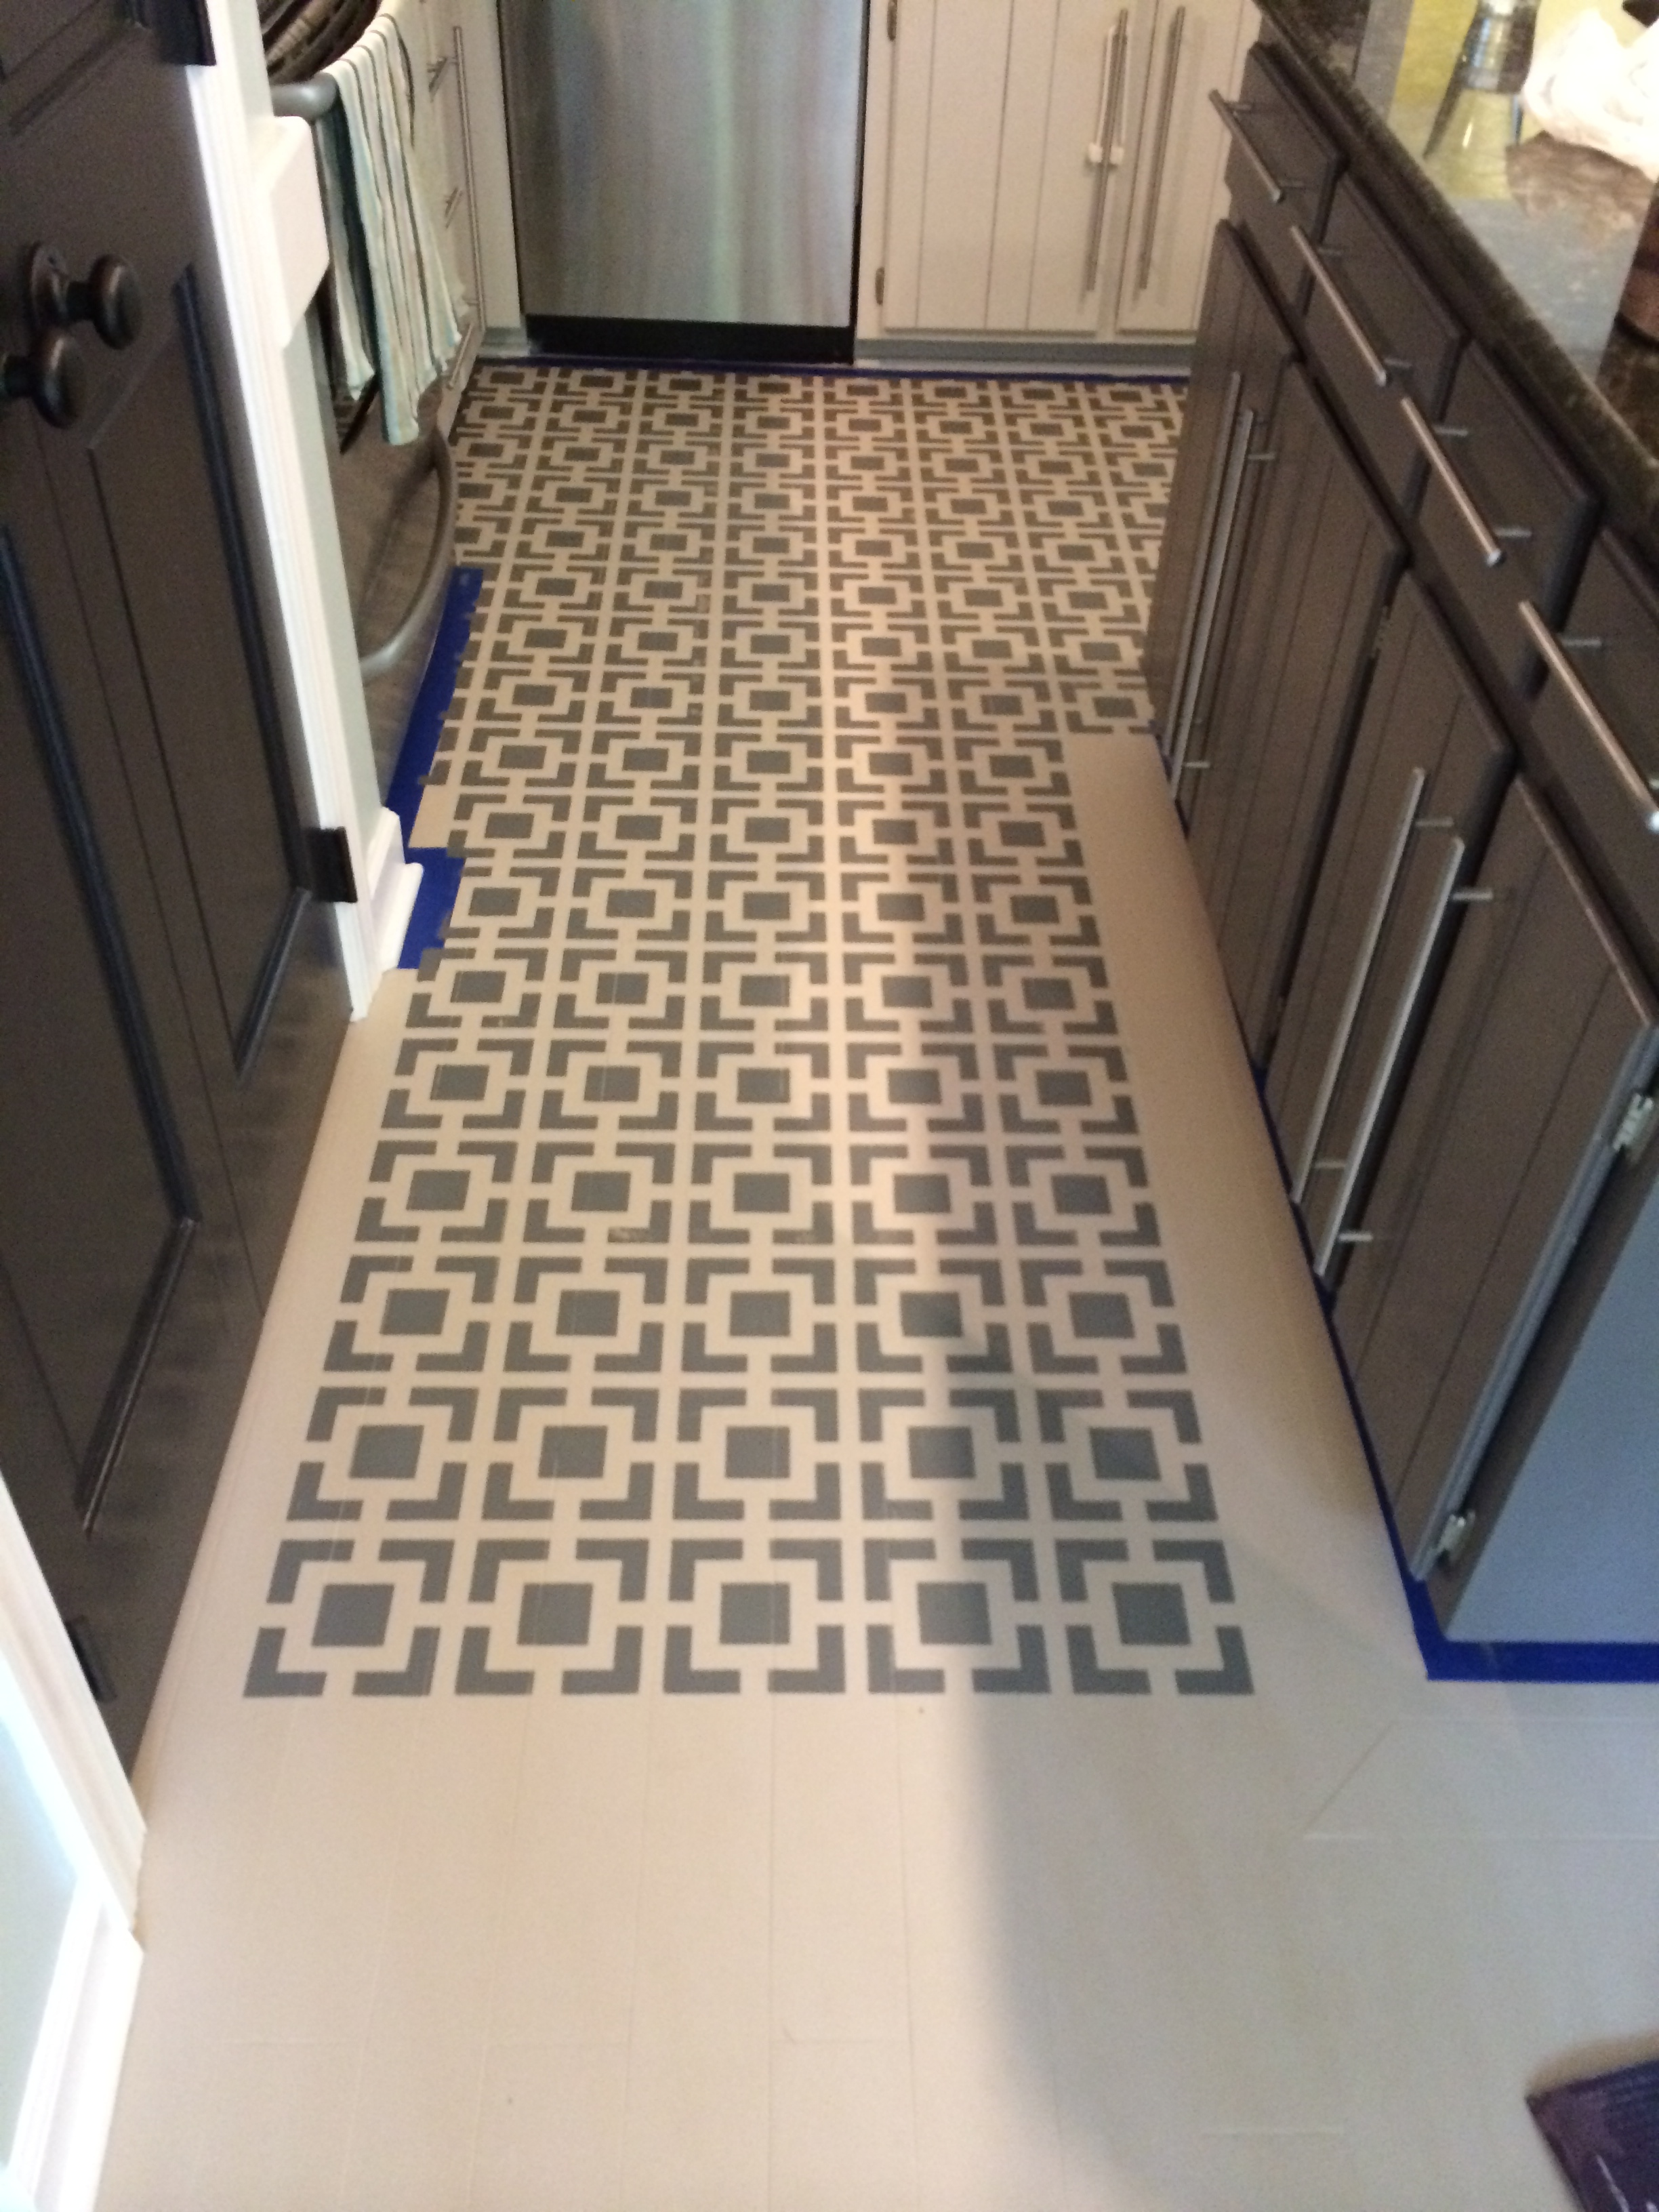 Diy stenciled floors a full tutorial designer trapped paint and stencil your kitchen floors for high impact on a tiny budget dailygadgetfo Images